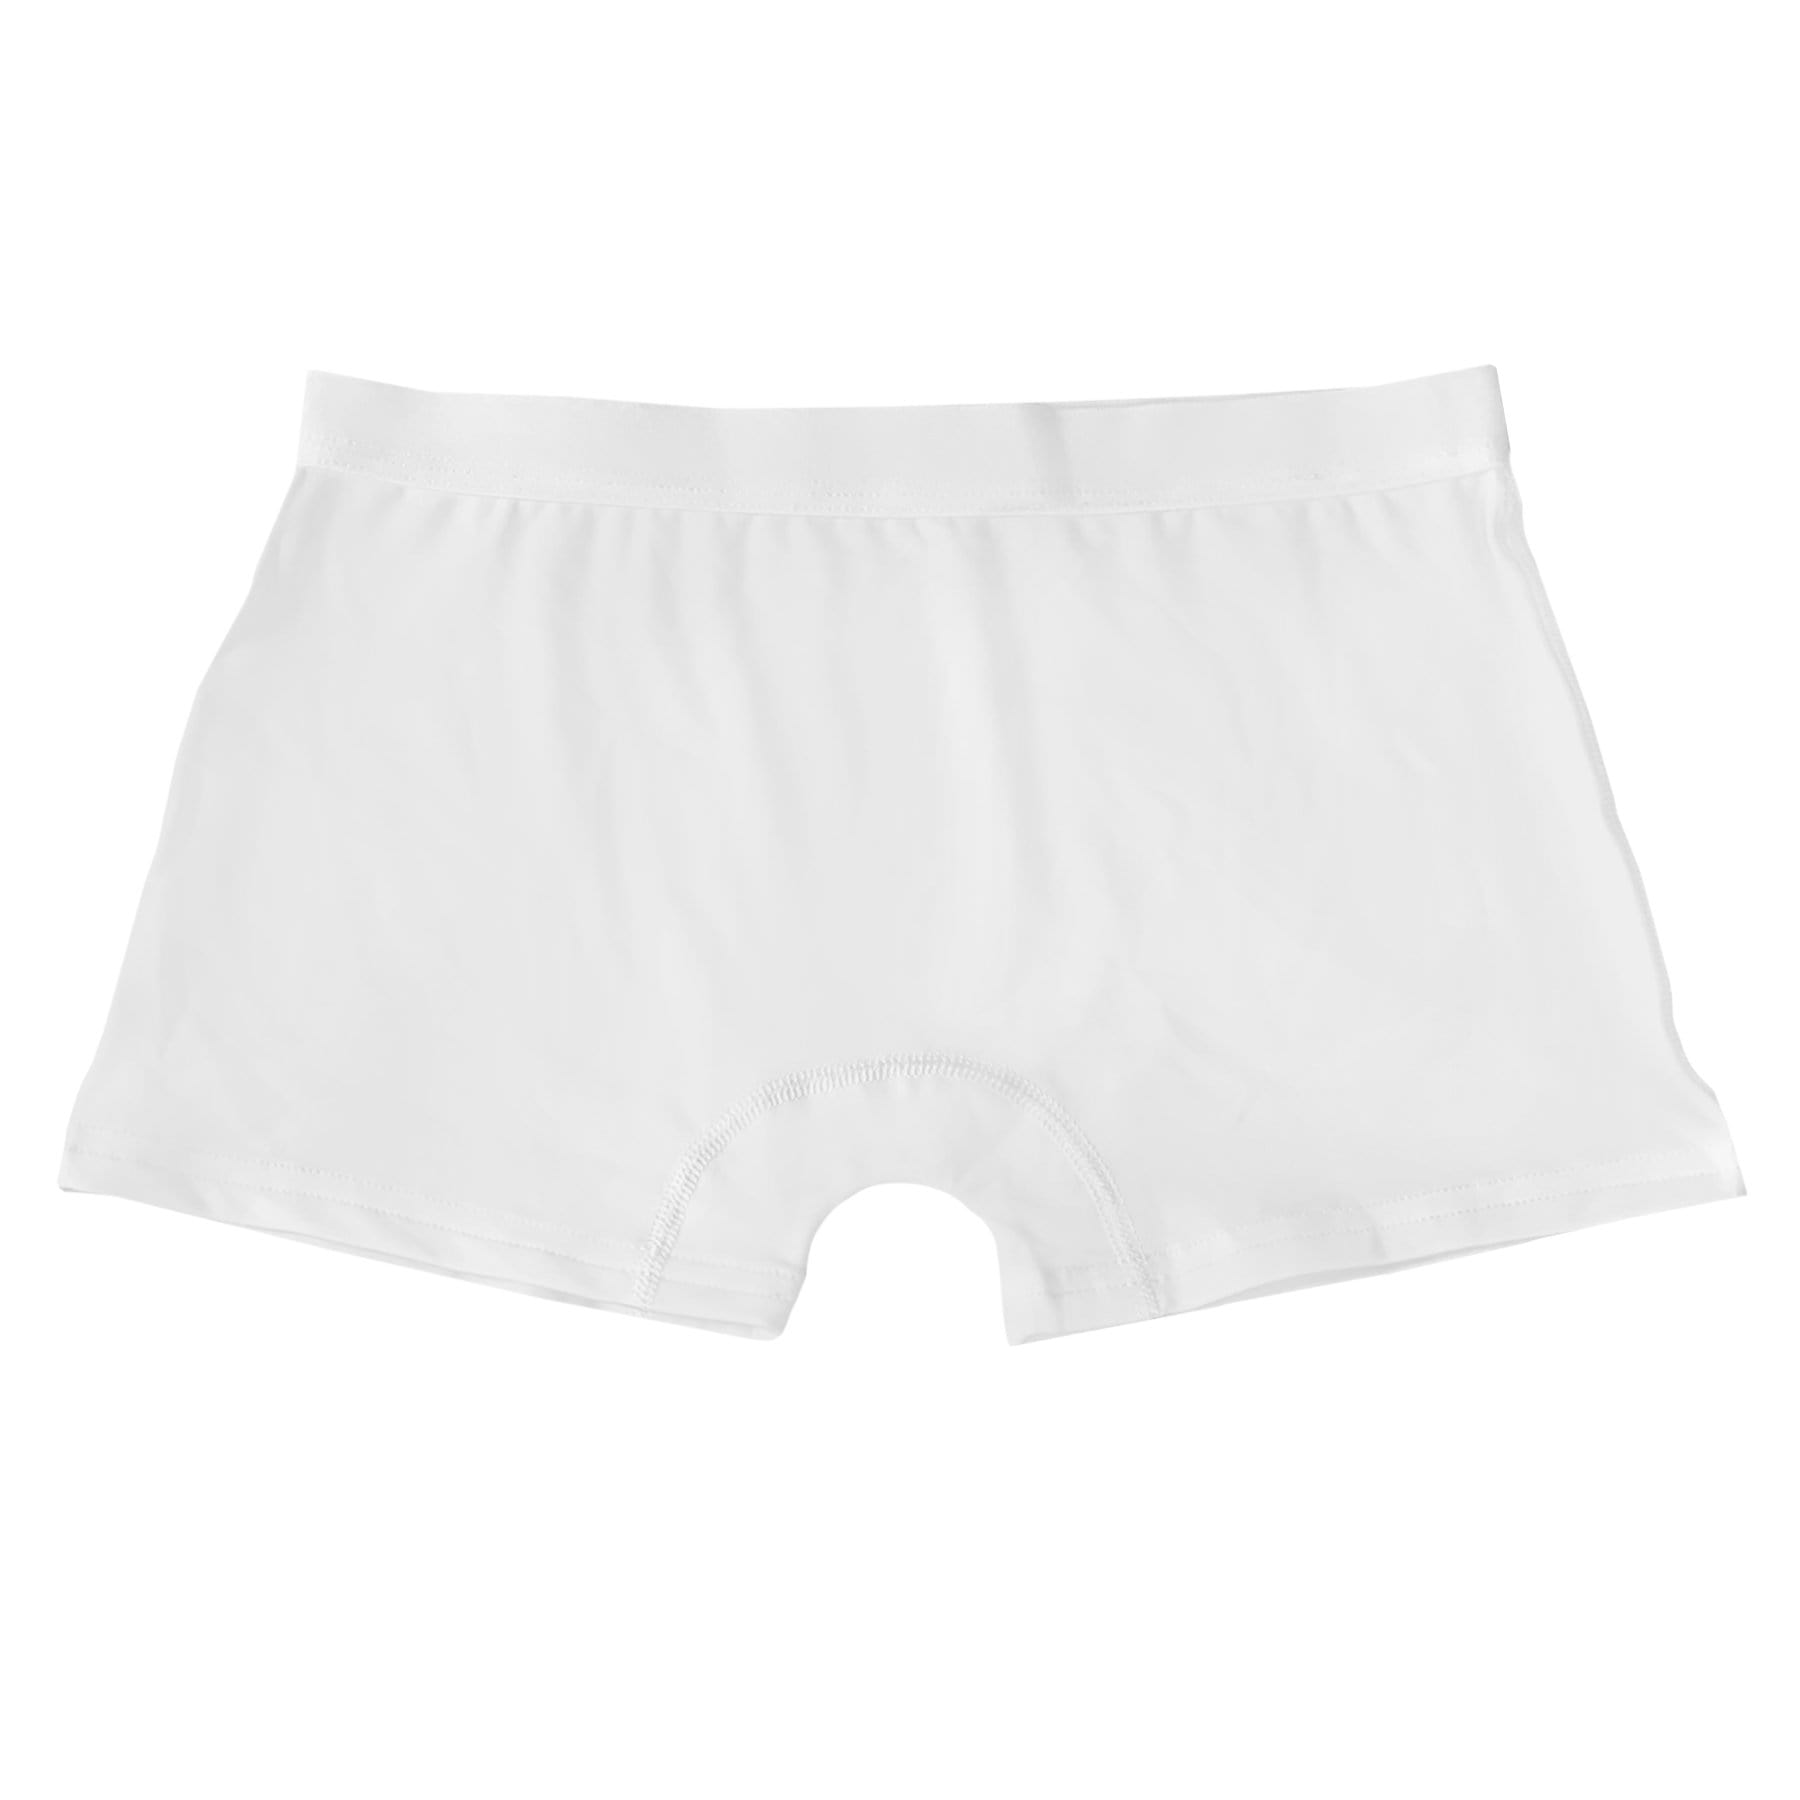 Blank Ladies Boyshorts